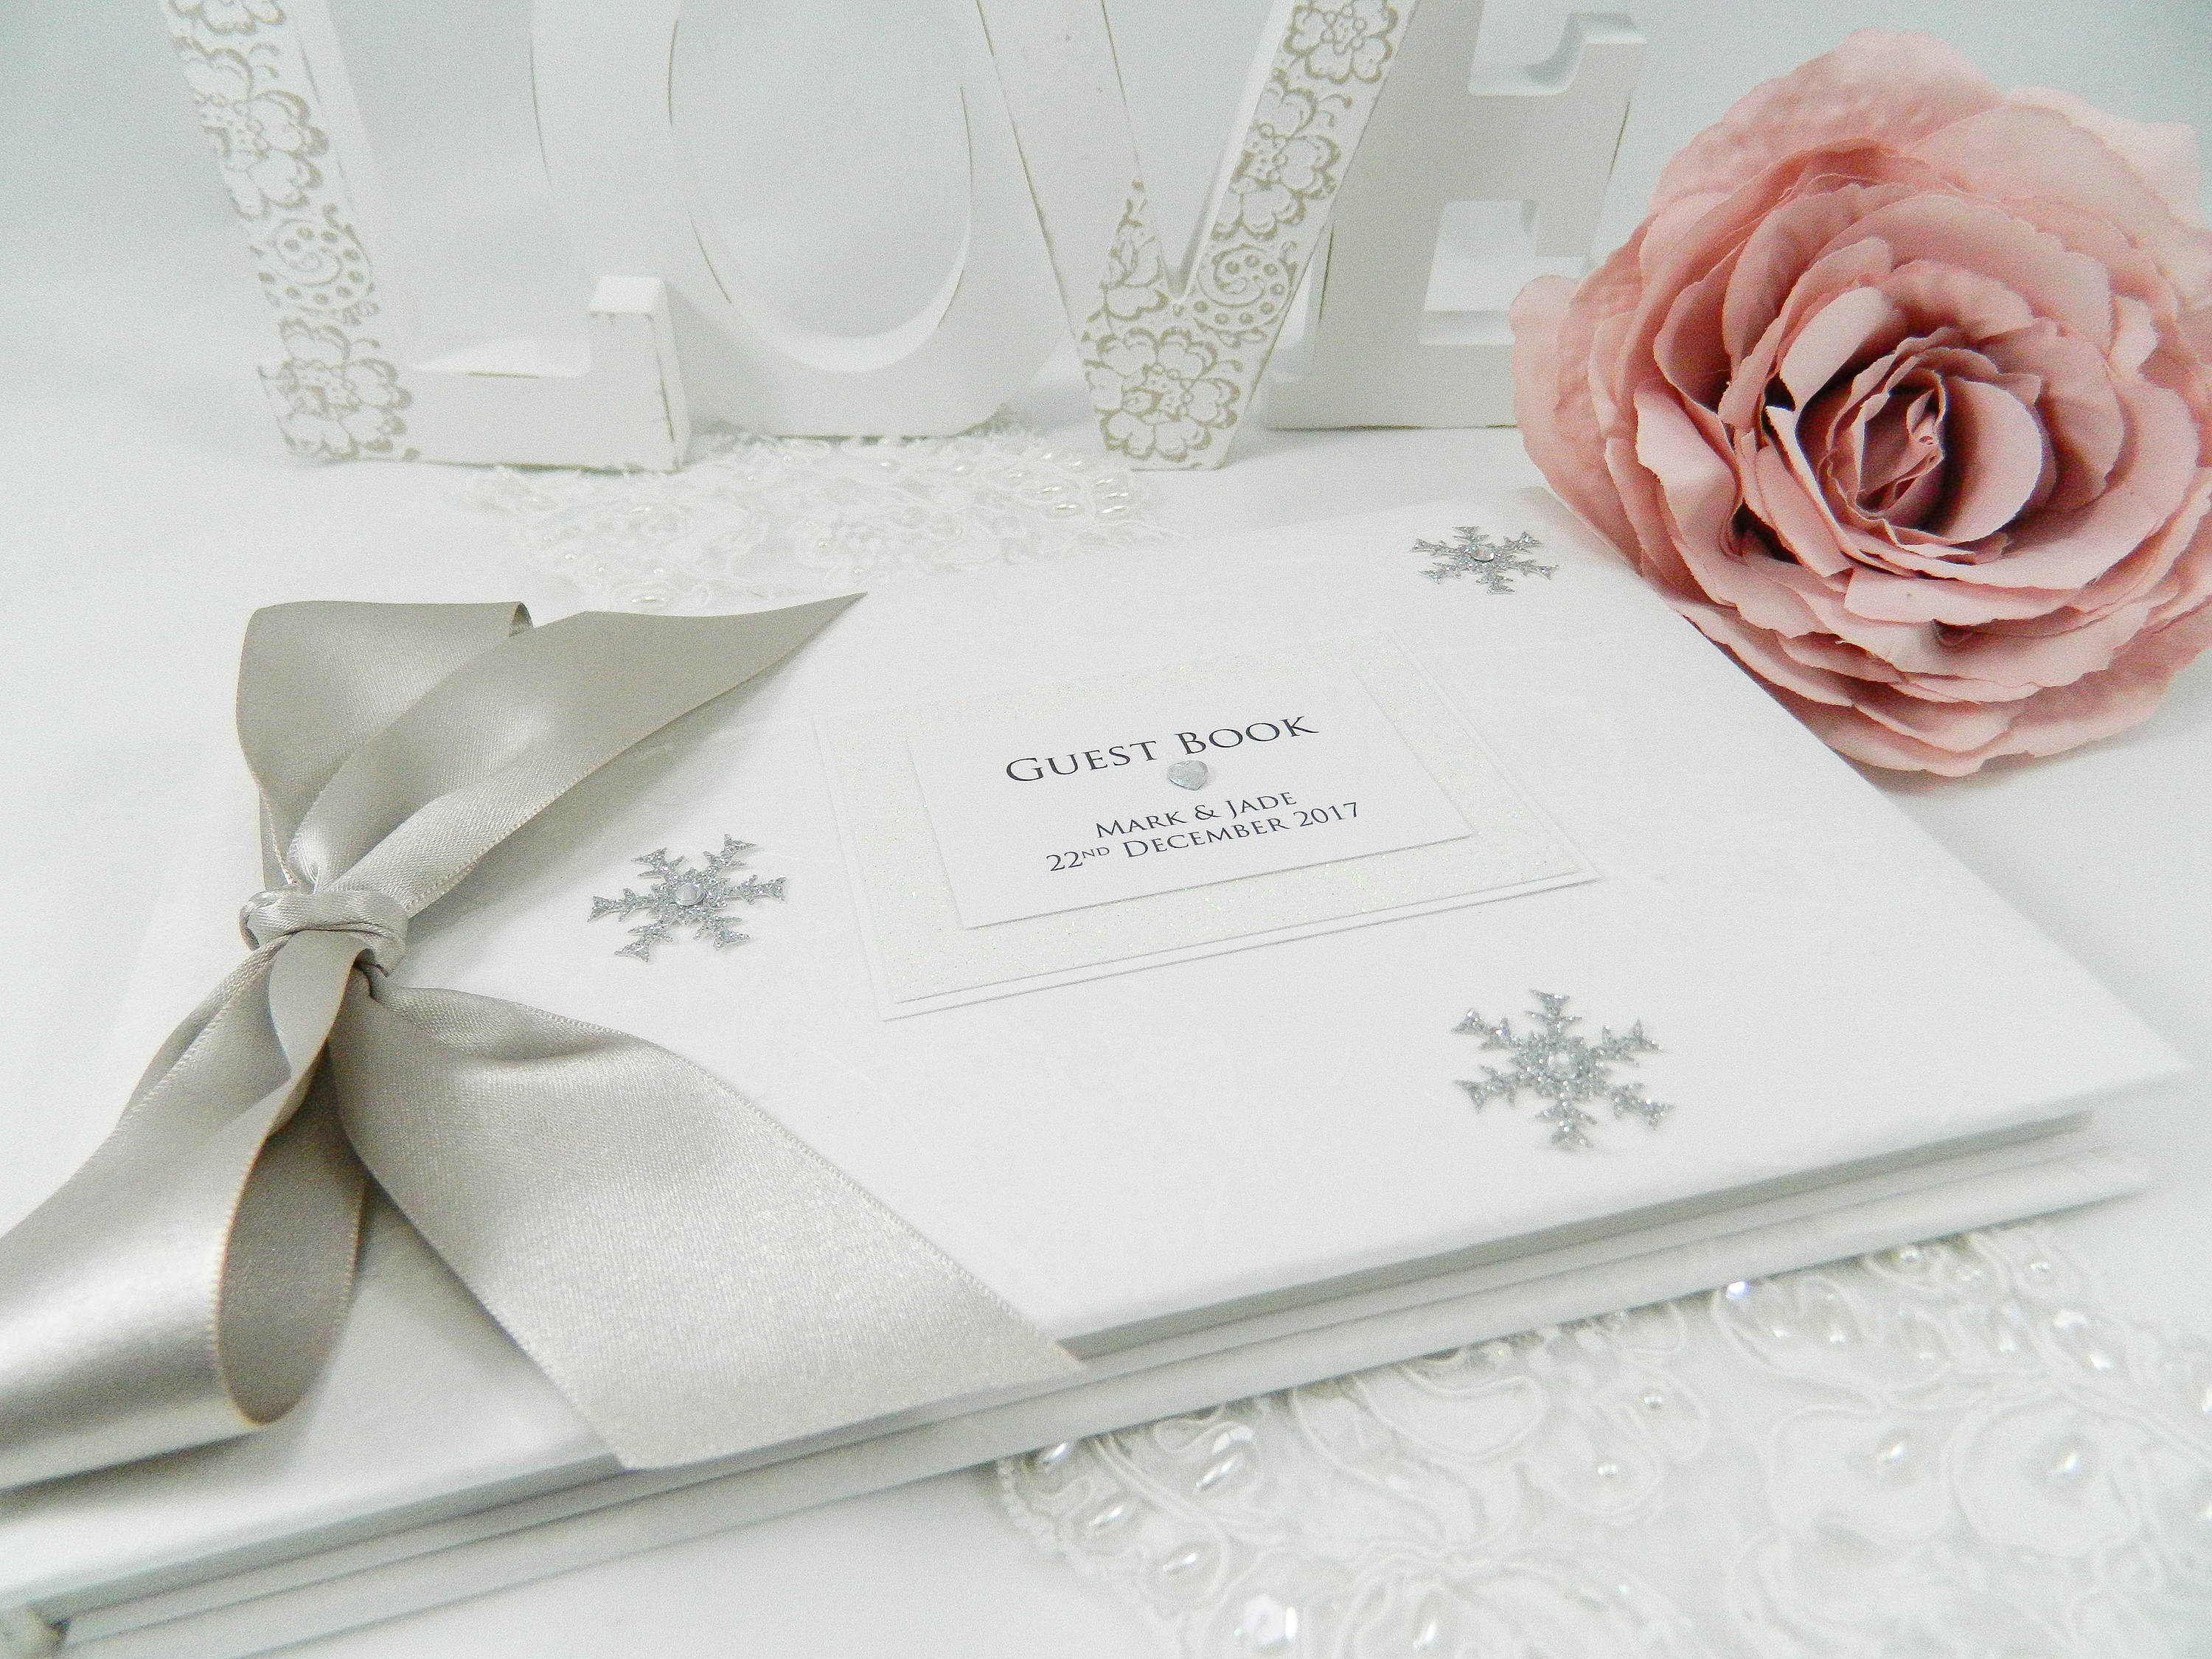 Winter/Christmas Snowflake Wedding Guest Book LARGE SIZE